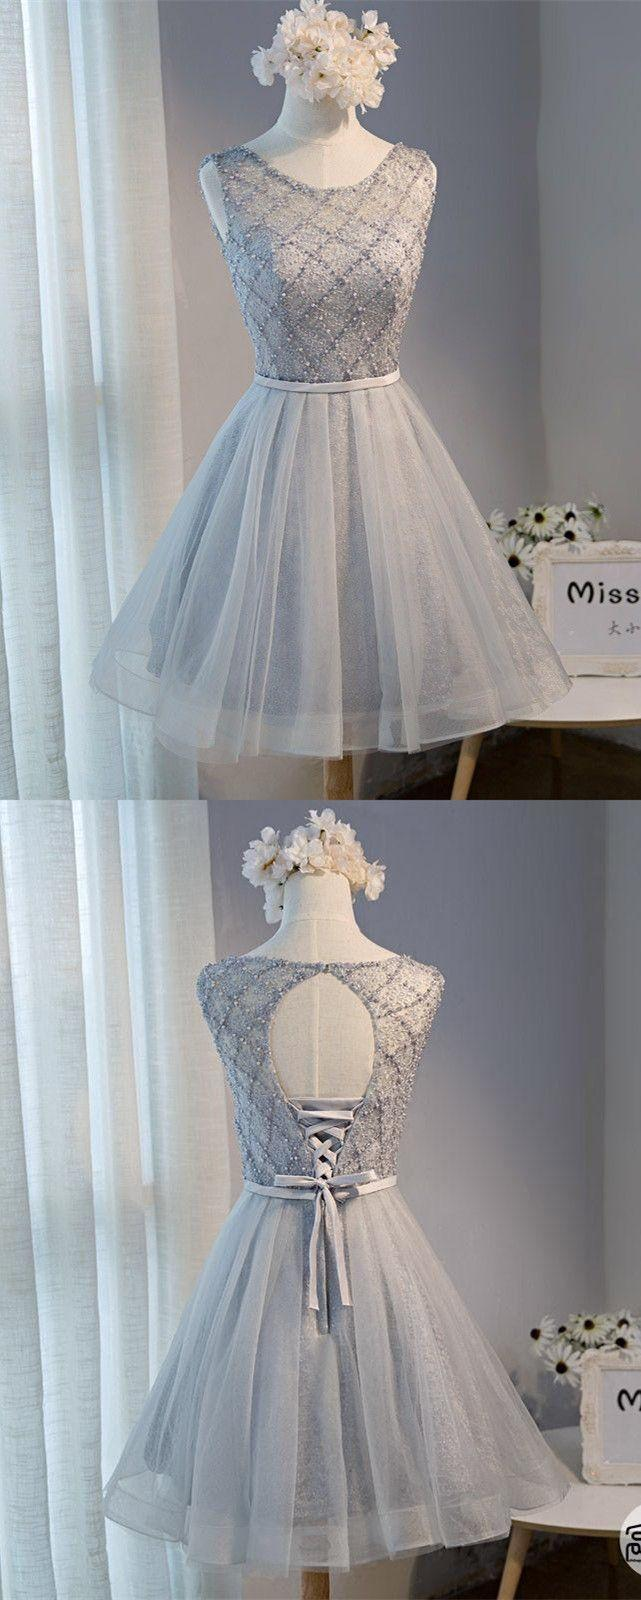 Wedding - A-Line Round Neck Open Back Grey Tulle Short Homecoming Dress With Beading